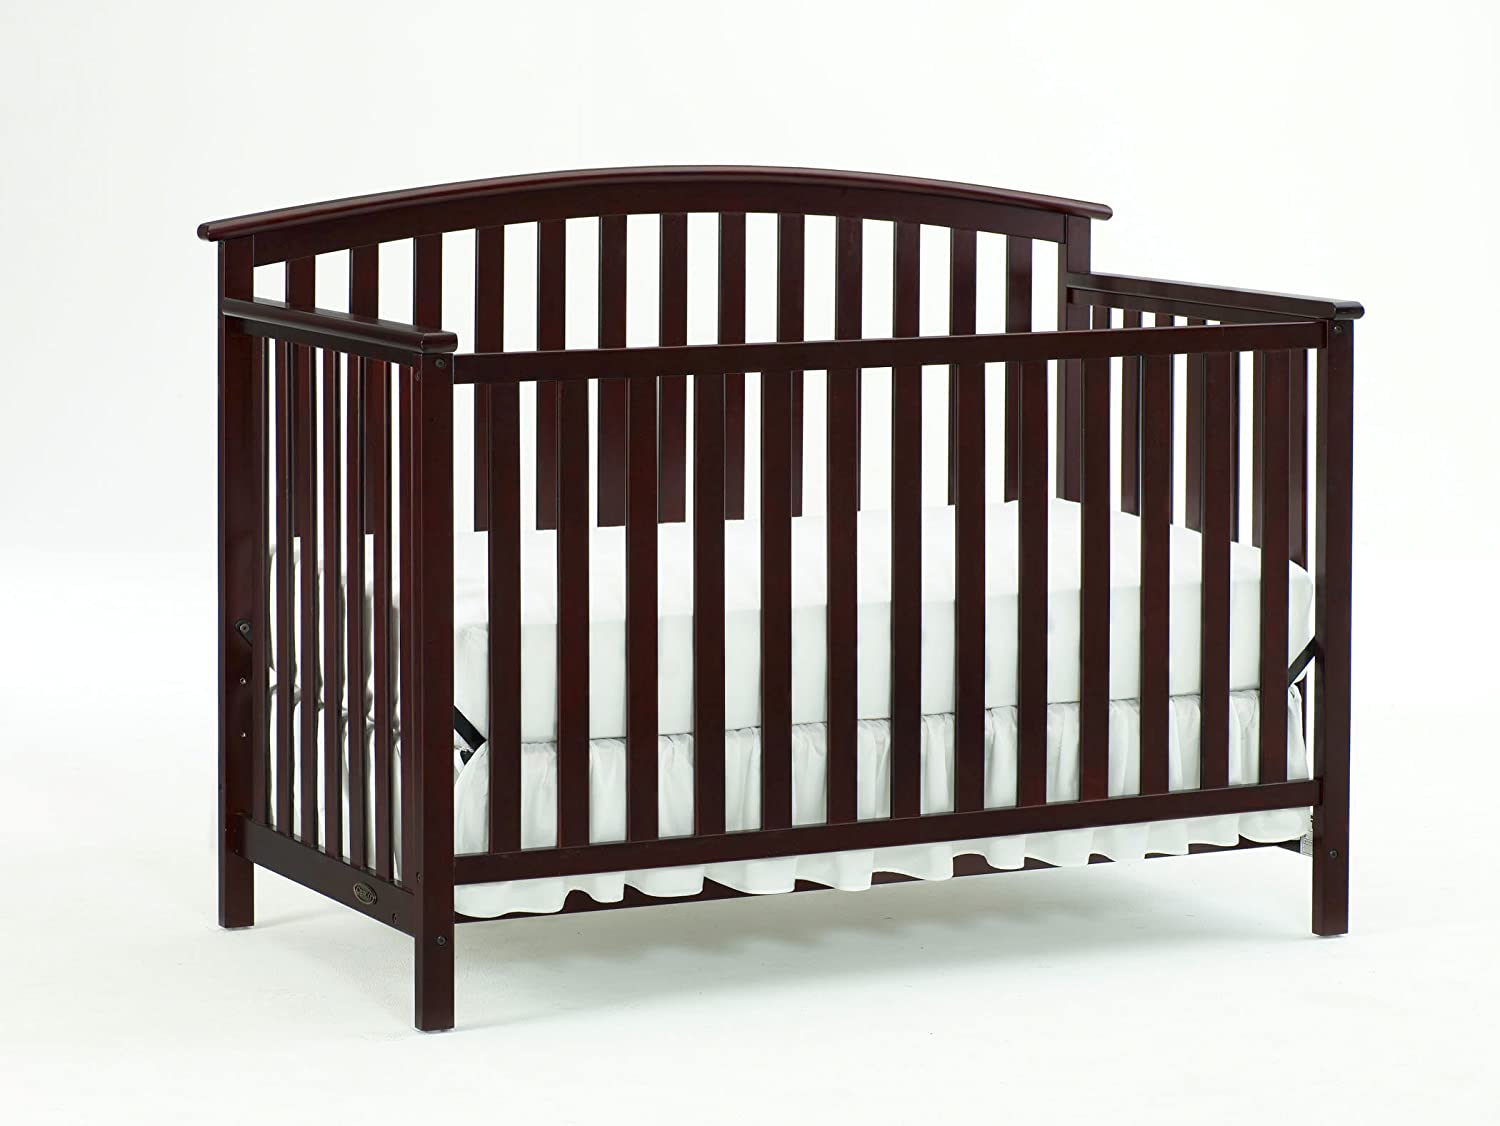 Espresso crib for sale - Graco Freeport Convertible Crib Cherry